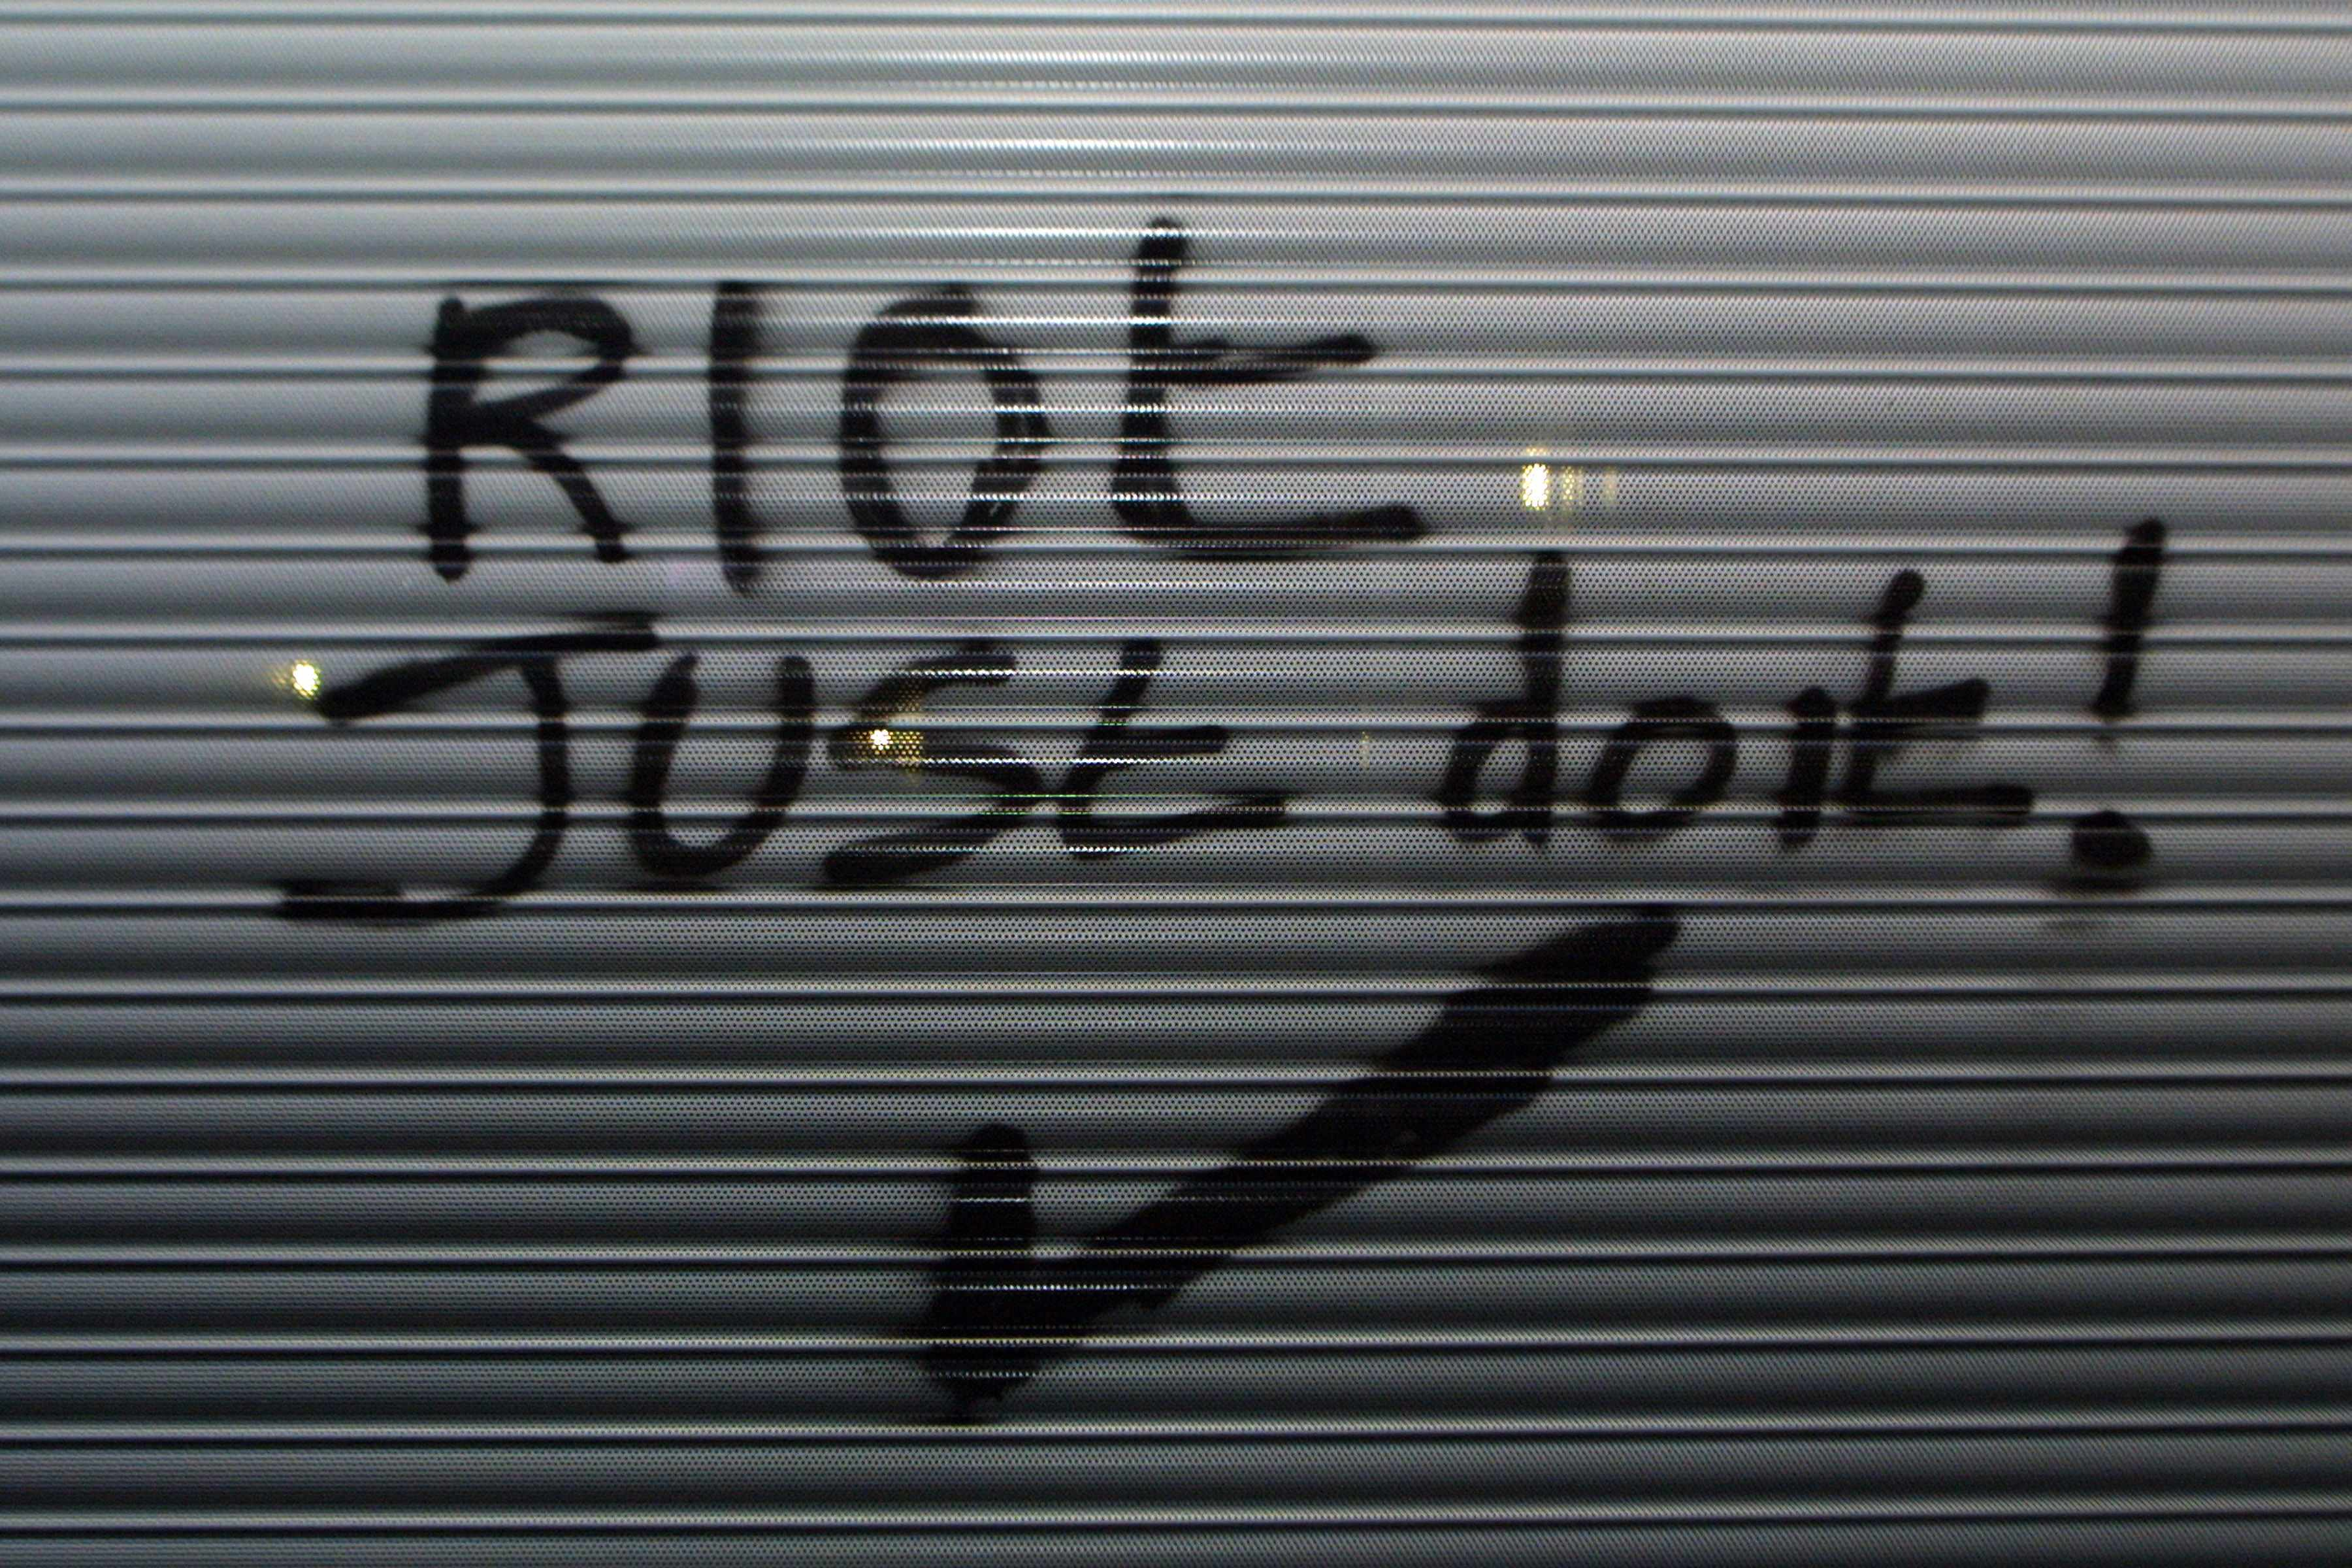 Anti-capitalist graffiti referencing the Nike slogan 'Just Do It'. Mayday riots, London, 2001. (Photo by PYMCA/UIG via Getty Images)